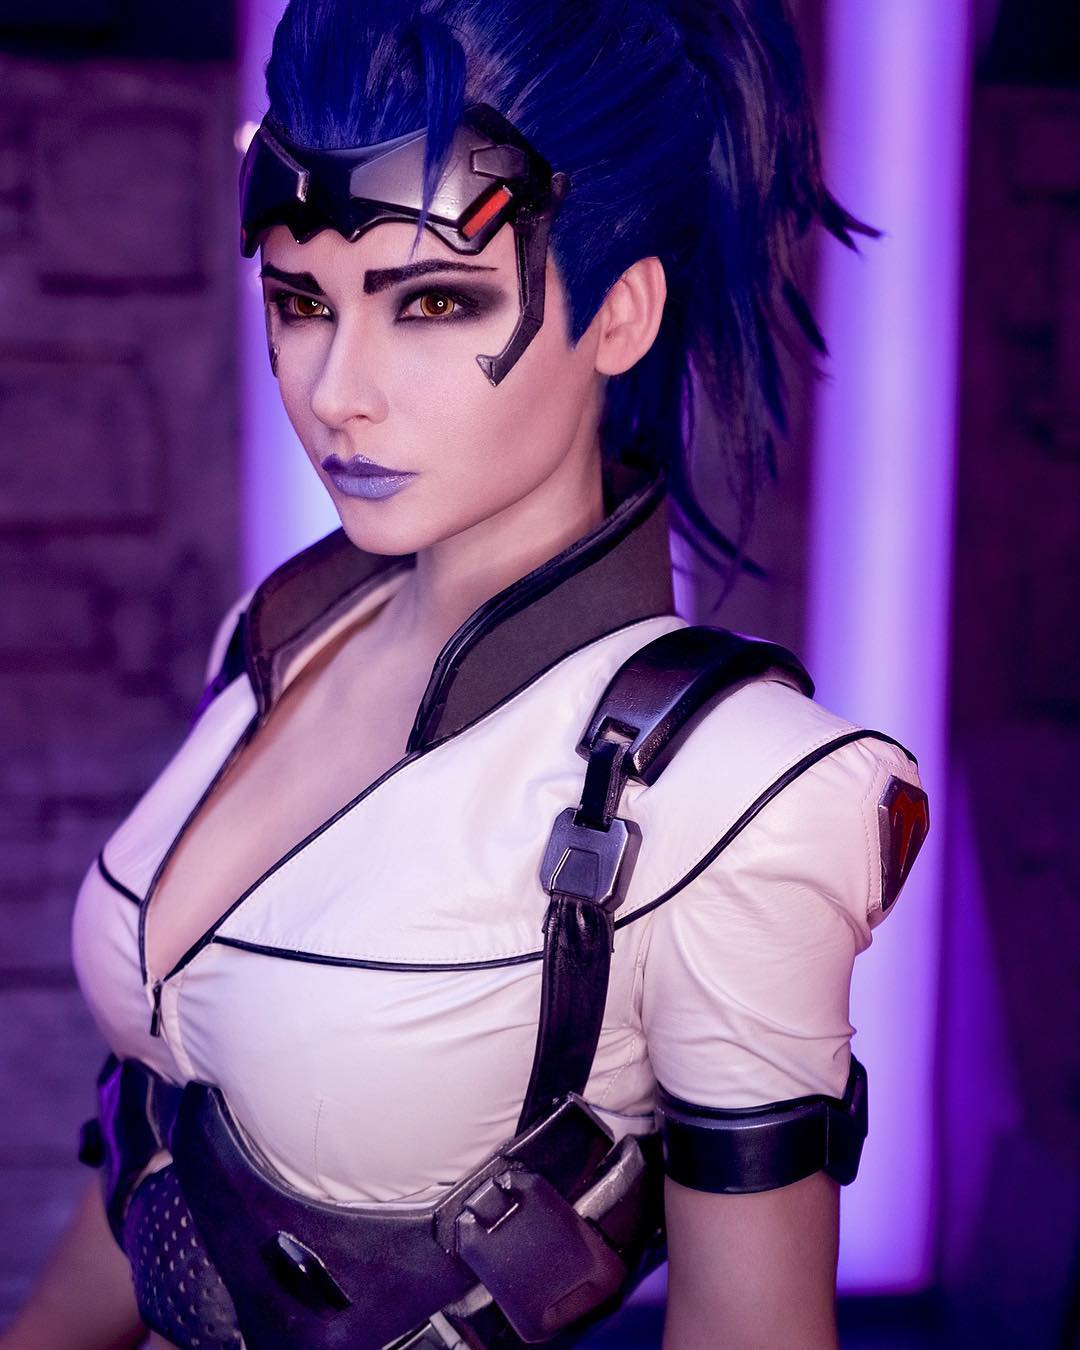 Jannet Incosplay Hot Look